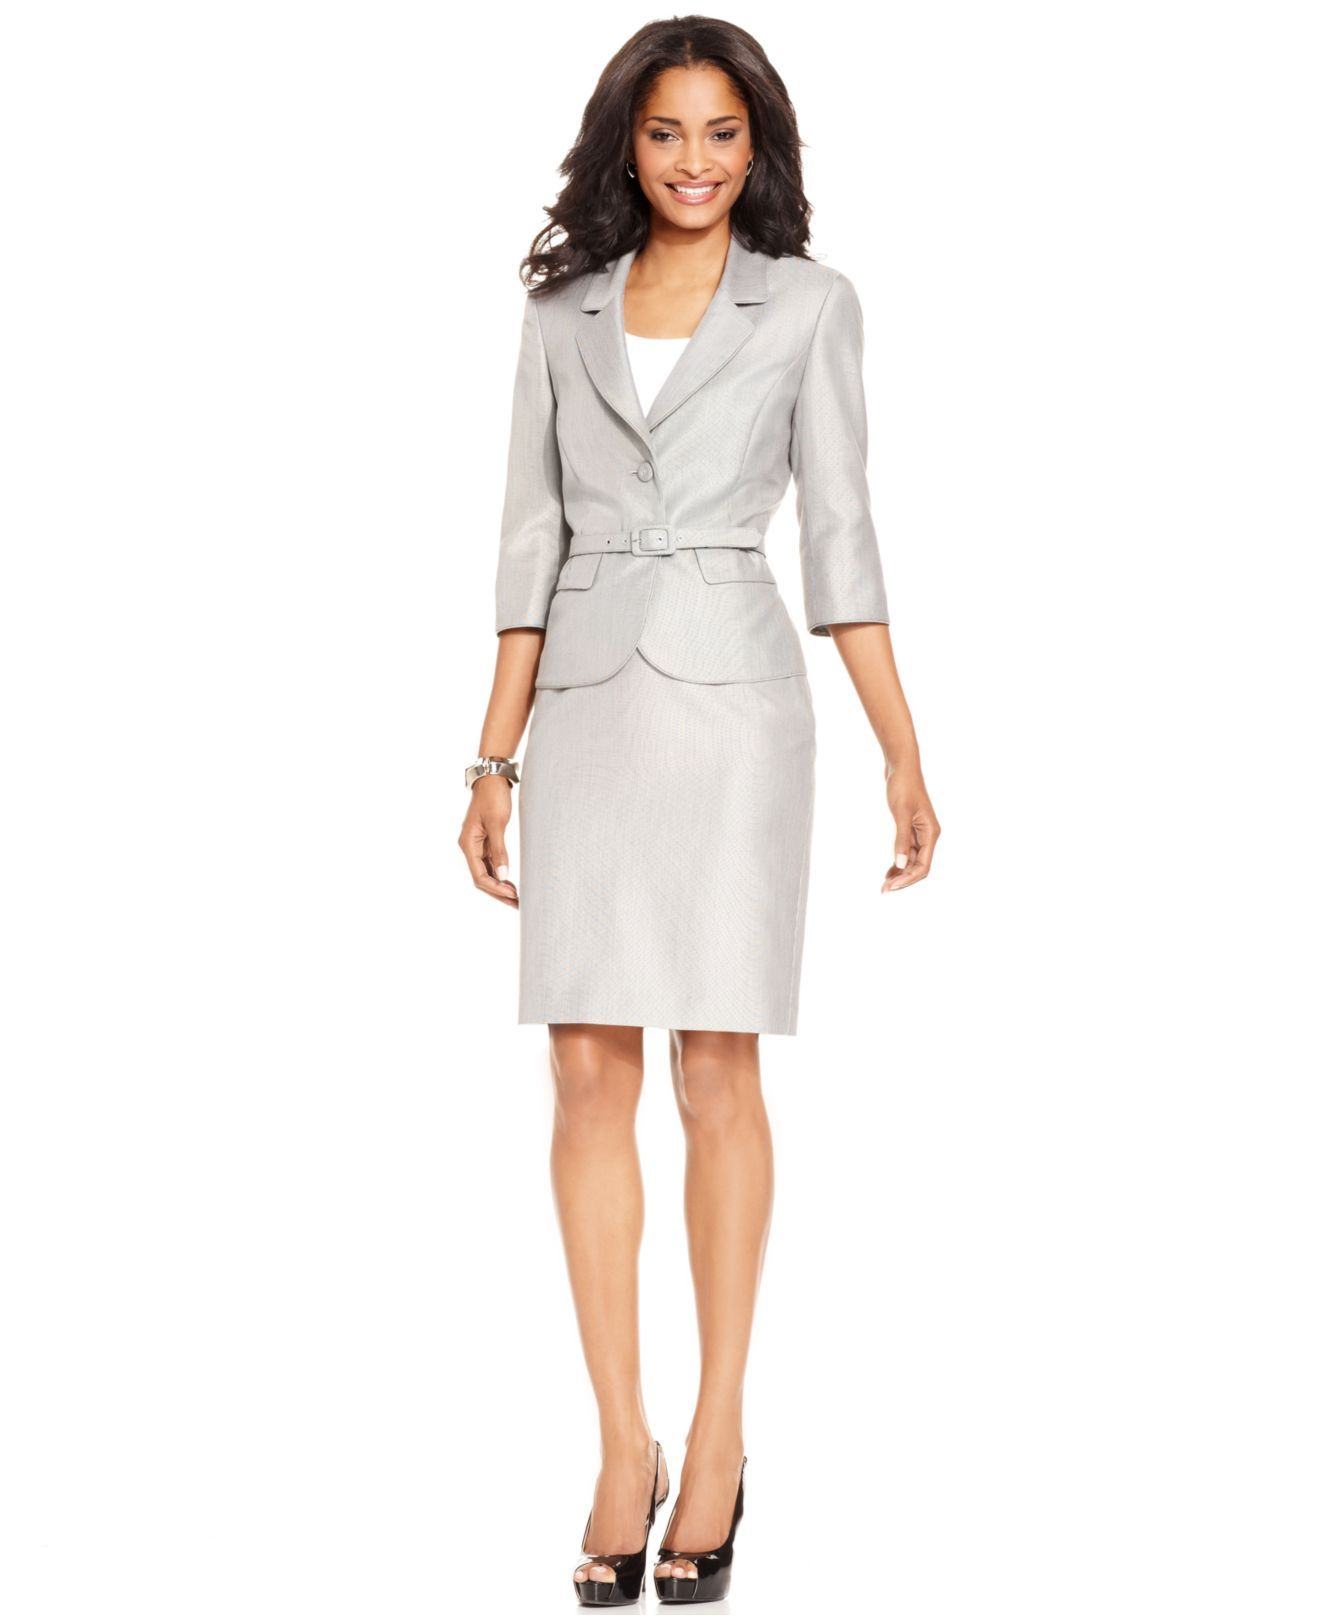 Nine West Suit Three Quarter Sleeve Belted Jacket Pencil Skirt